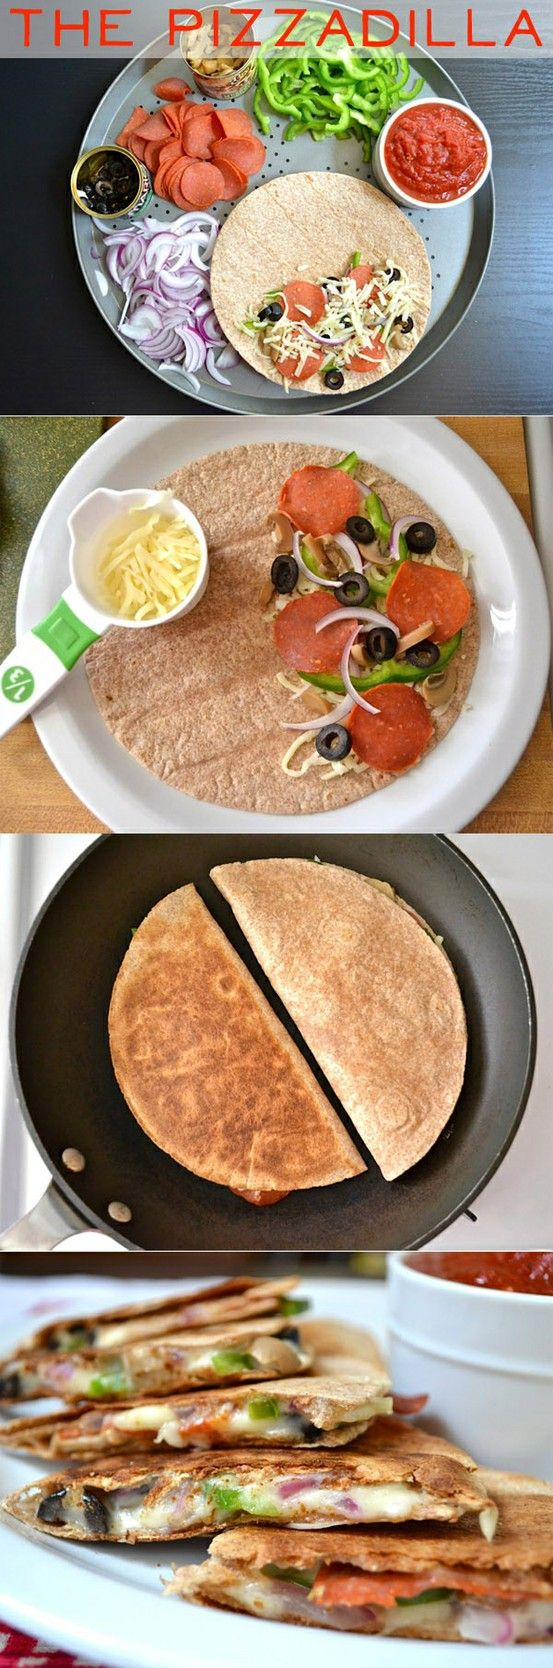 Pizzadillas - healthy pizza - You could also let everyone build there own, bring it to you, you cook it and serve it- just the way they like! :)